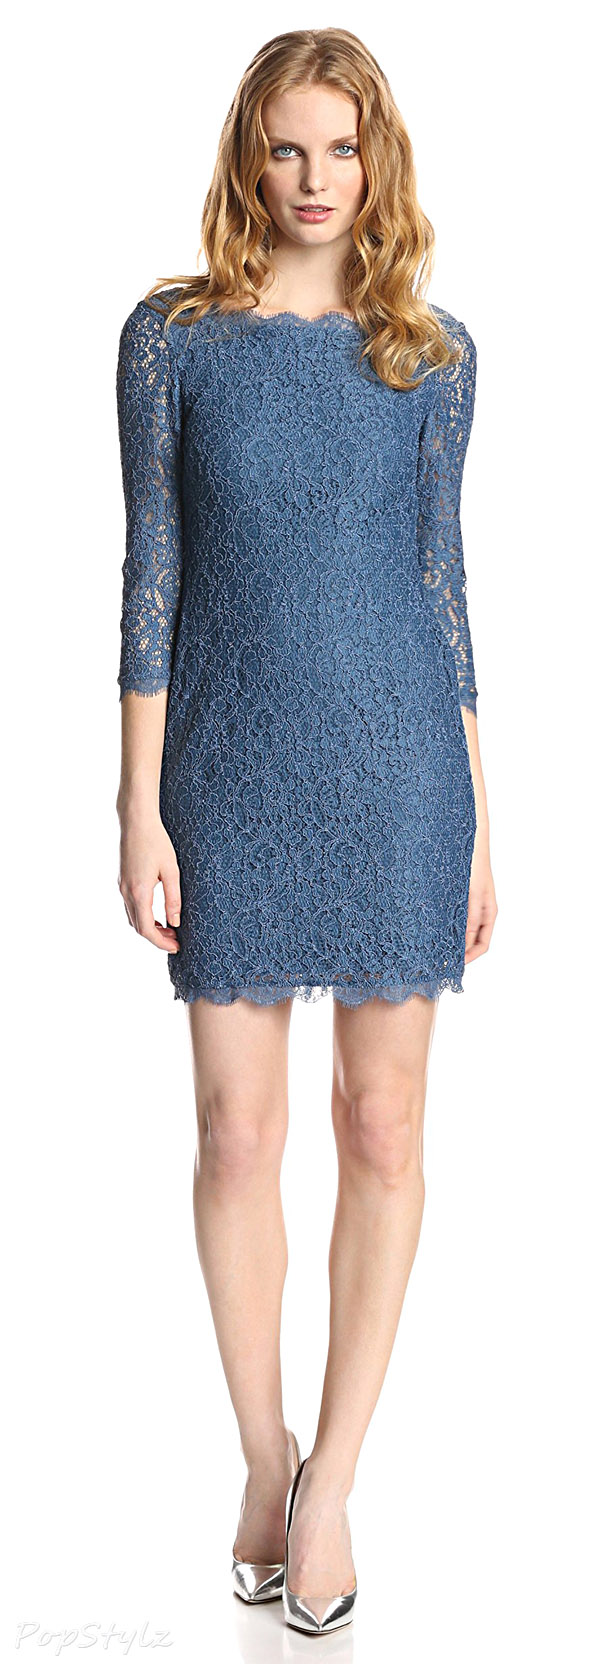 Adrianna Papell Women's Lovely Lace Dress